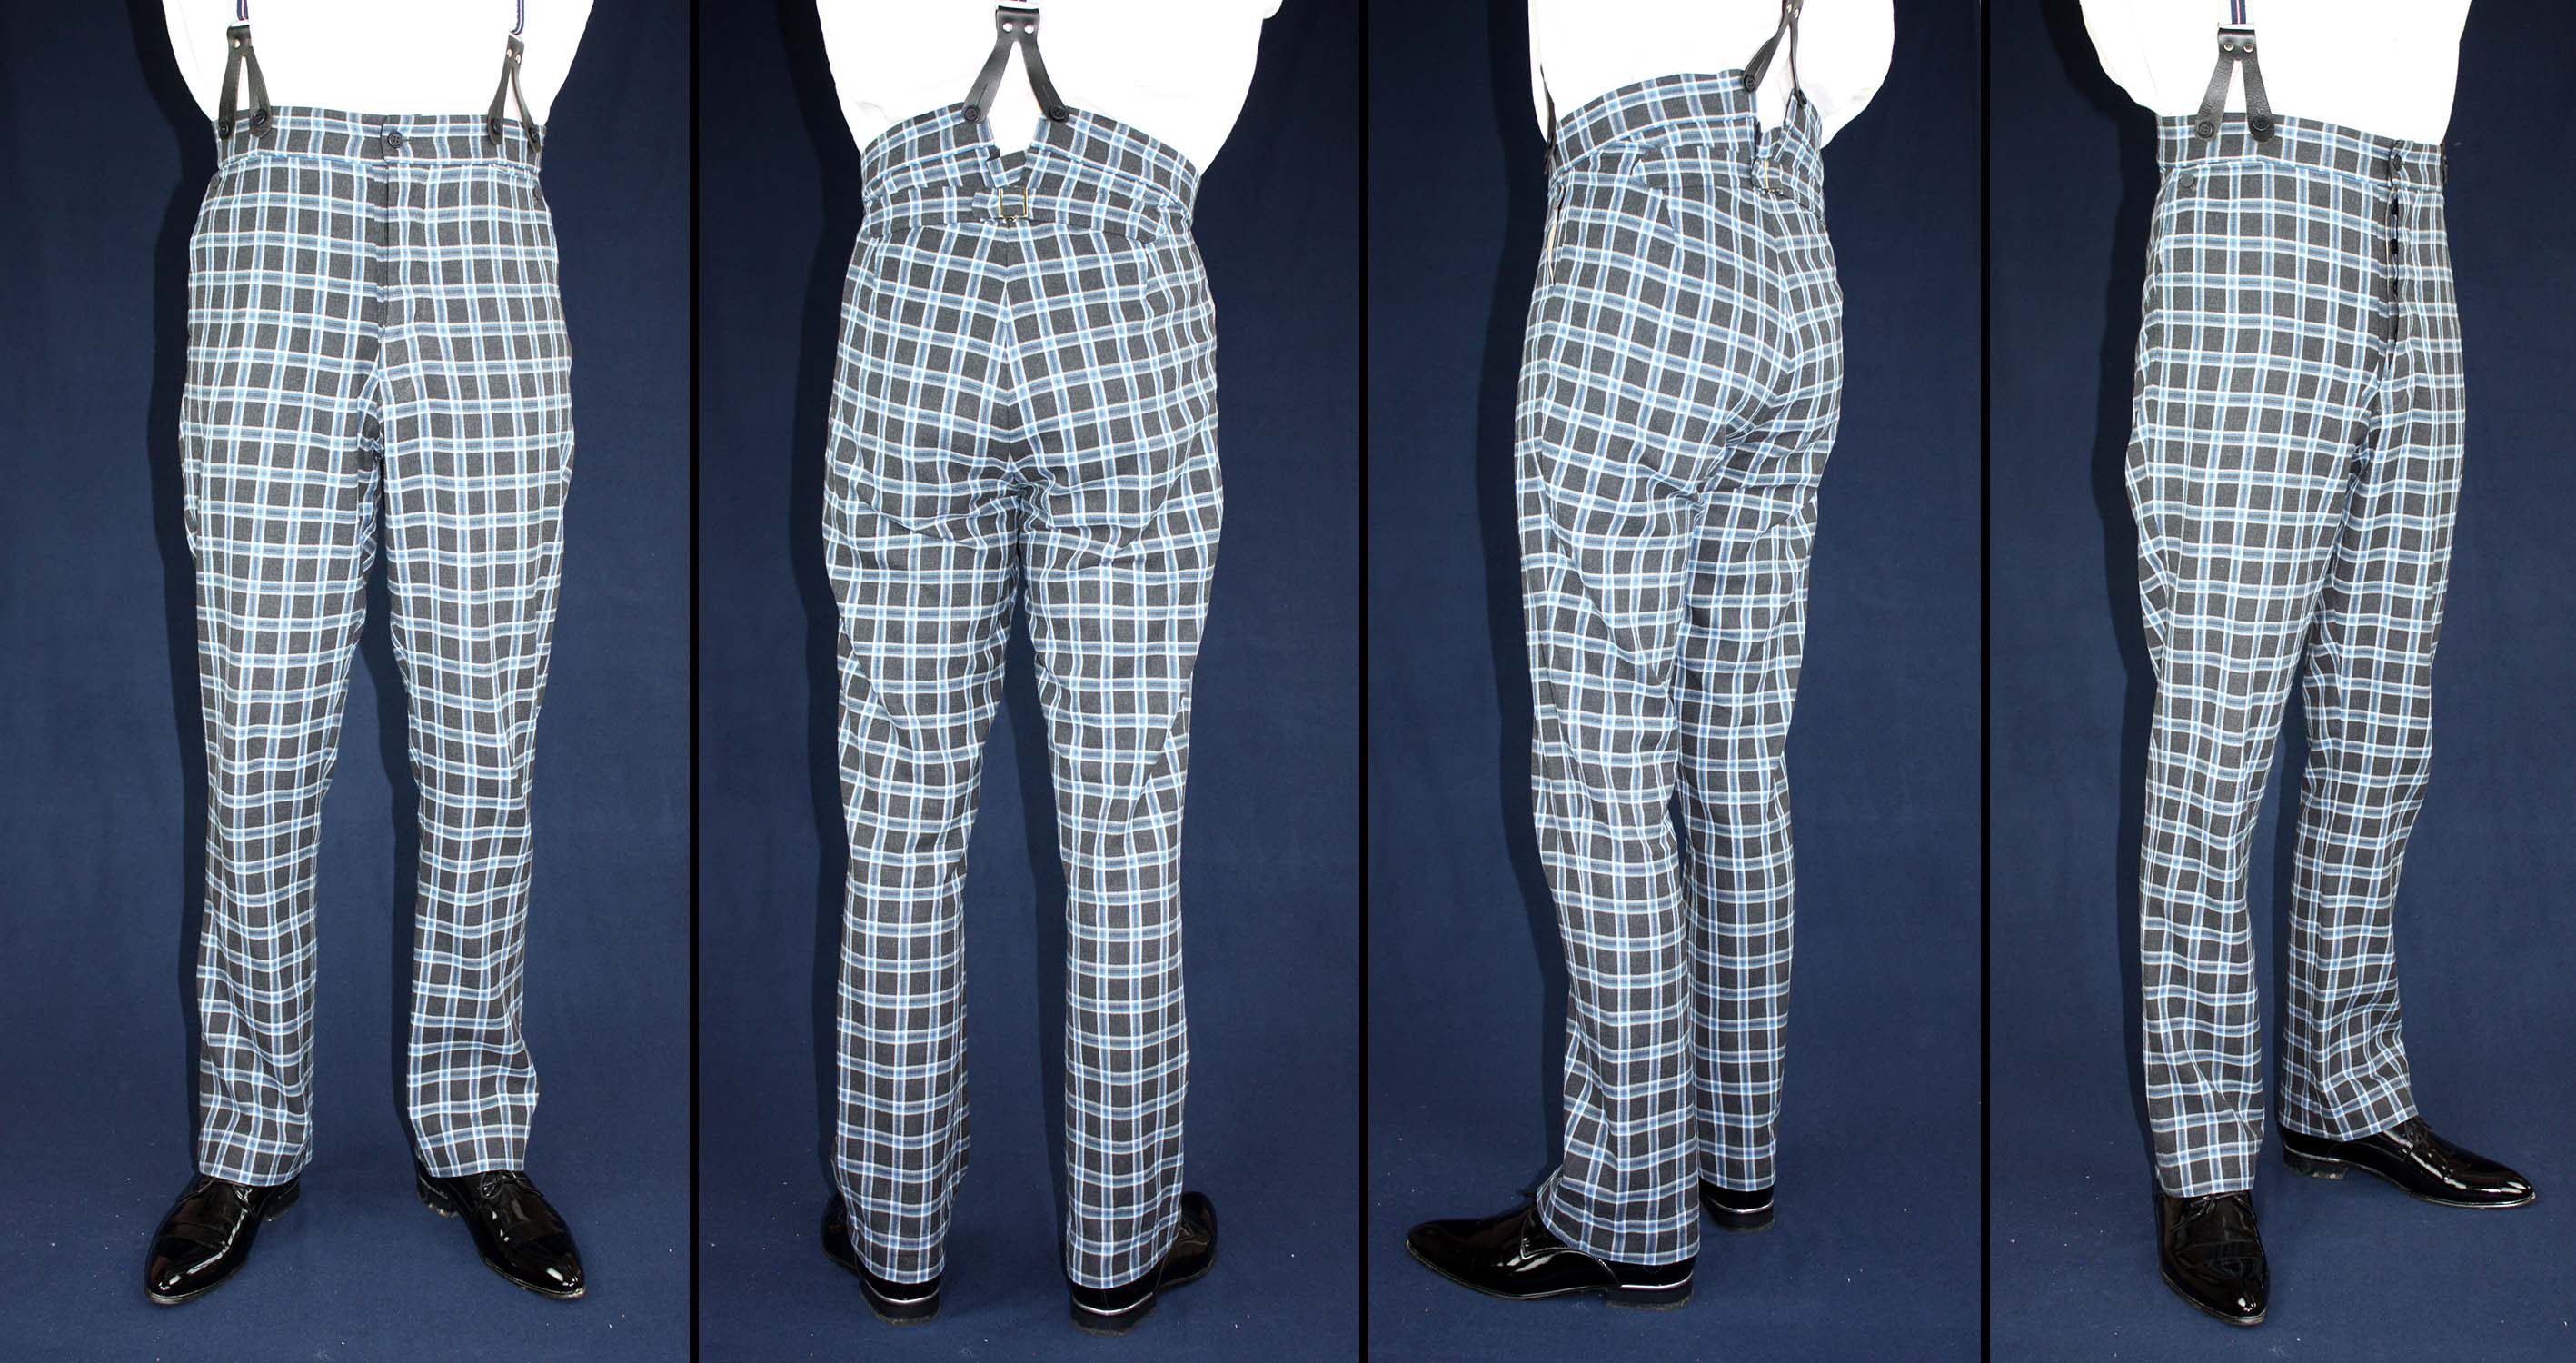 Trousers Biedermeier 1830 to 1860 with a wide and a tight fitting leg Sewing Pattern #0218 Size US 34-56 (EU 44-66) PDF Download